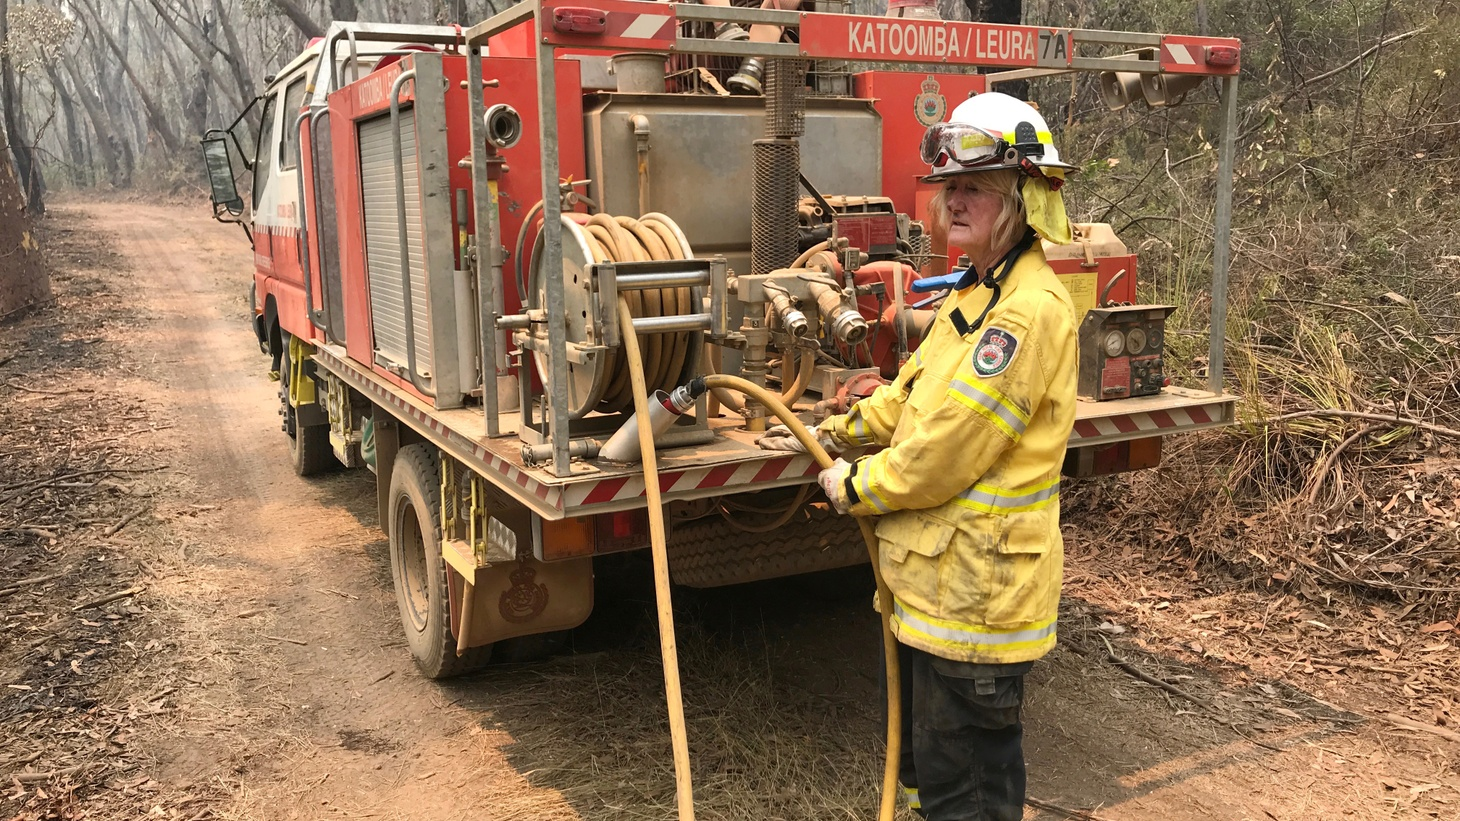 A volunteer from the New South Wales Rural Fire Service works to extinguish spot fires following back burning operations in Mount Hay, in Australia's Blue Mountains, December 28, 2019.